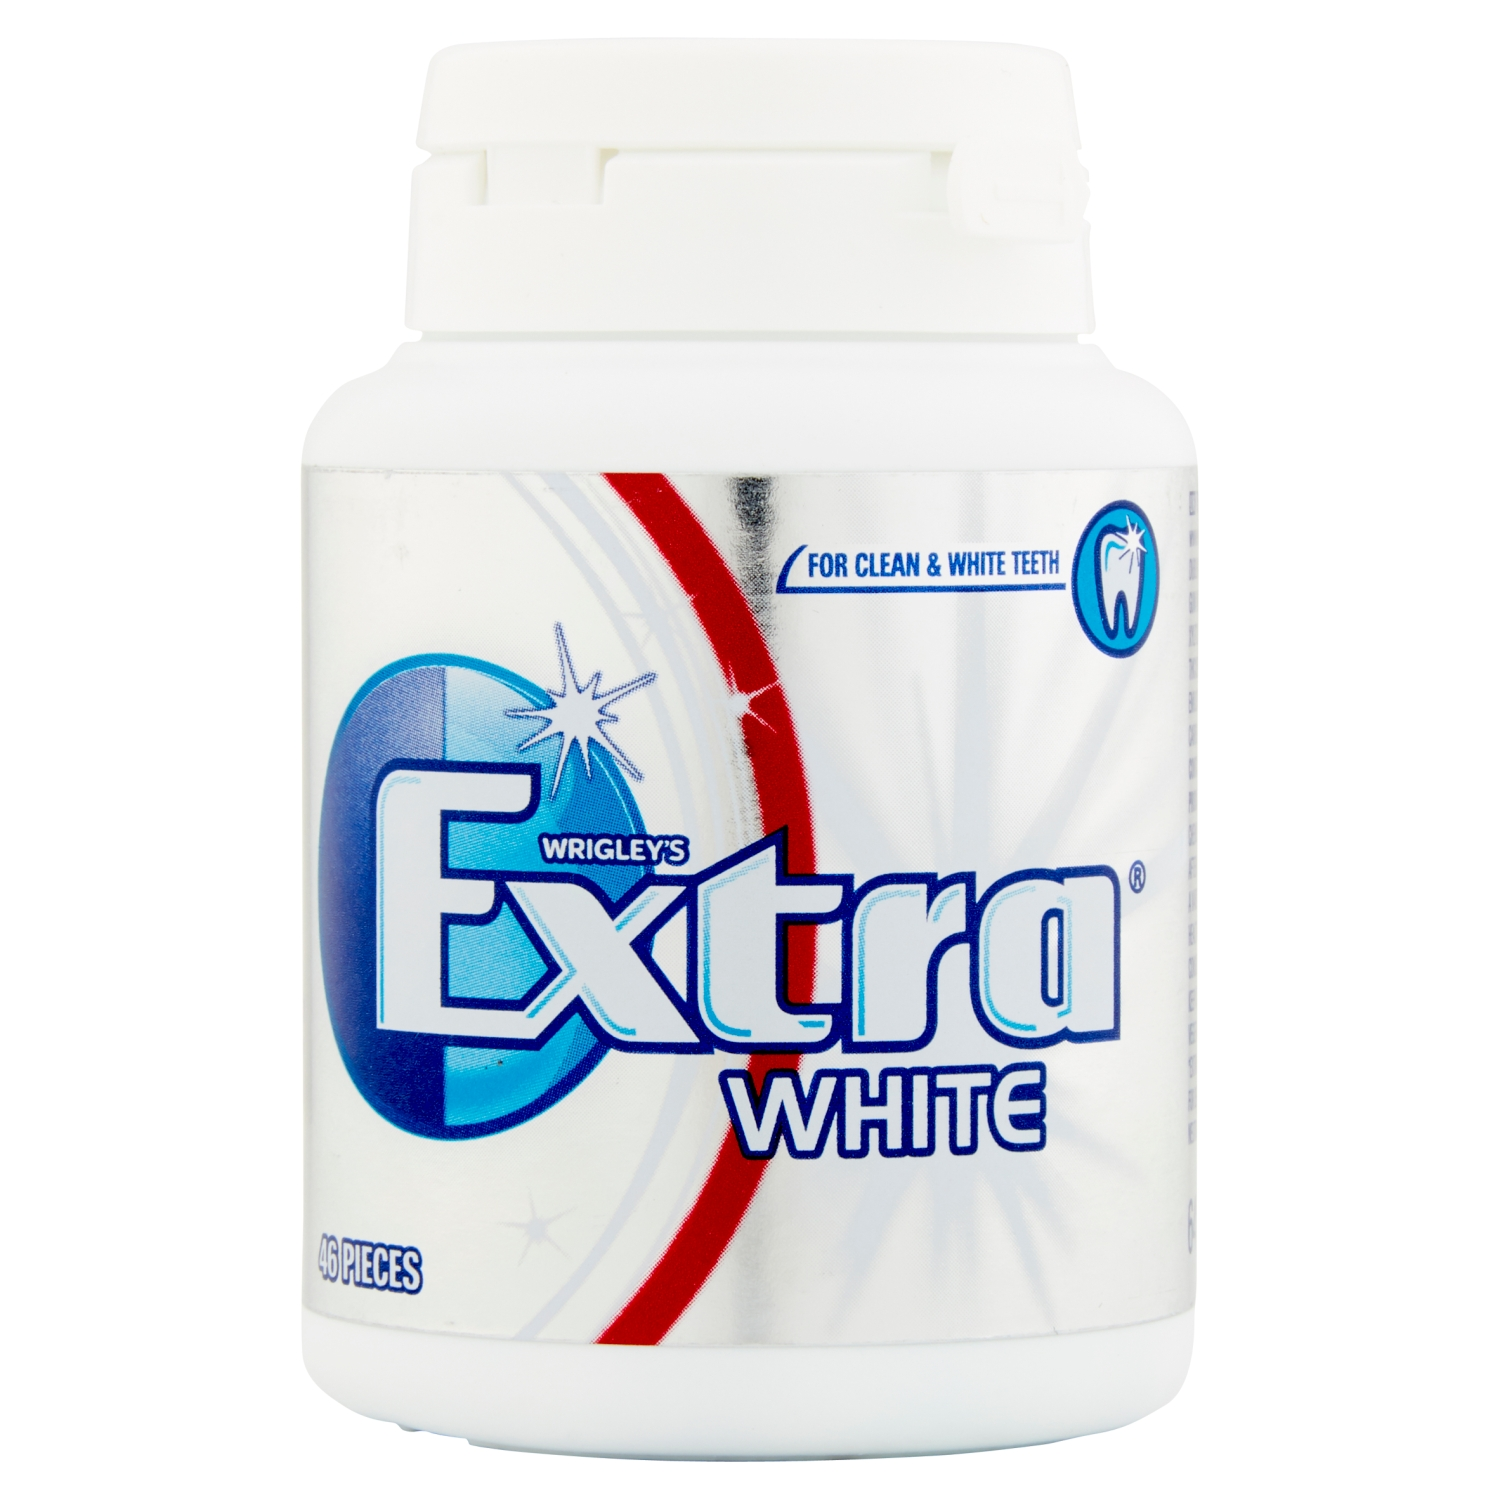 Wrigley's Extra White Sugarfree Chewing Gum 46 Pieces 64g